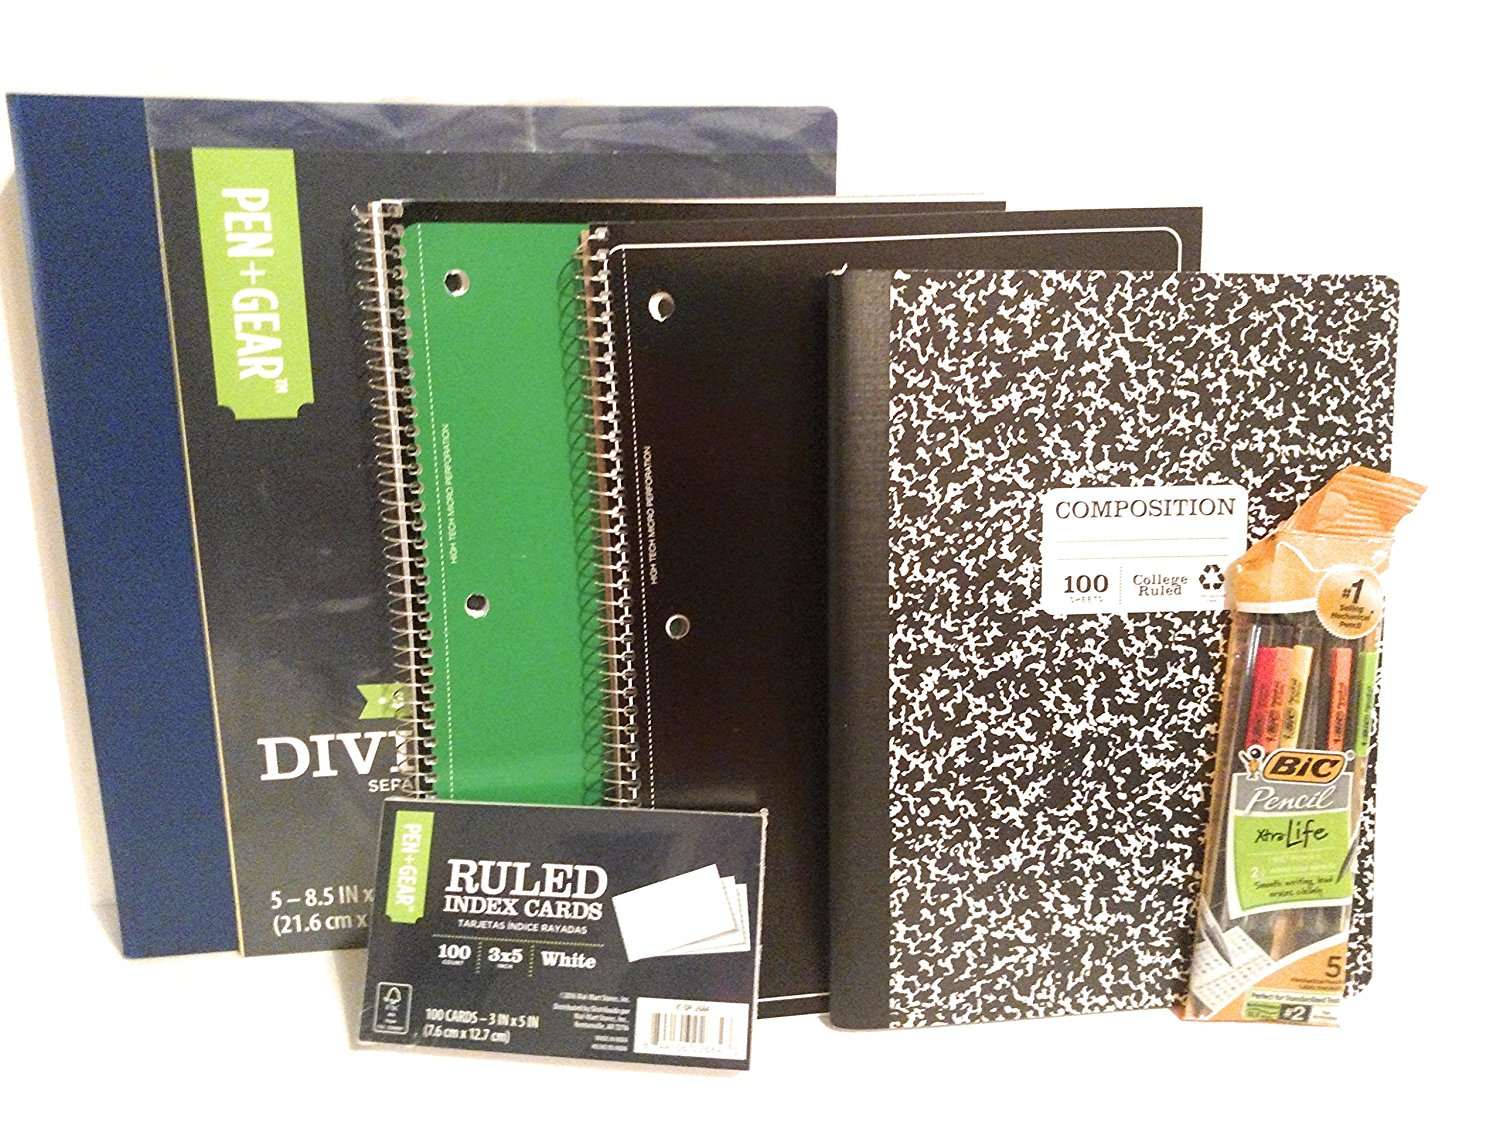 School Supply Bundle Pack for High School, Middle School or College - Spiral Notebooks, Bic Mechanical Pencils, Binder, Dividers, Index Cards, Composition Book (College Ruled - 7 Item Set)